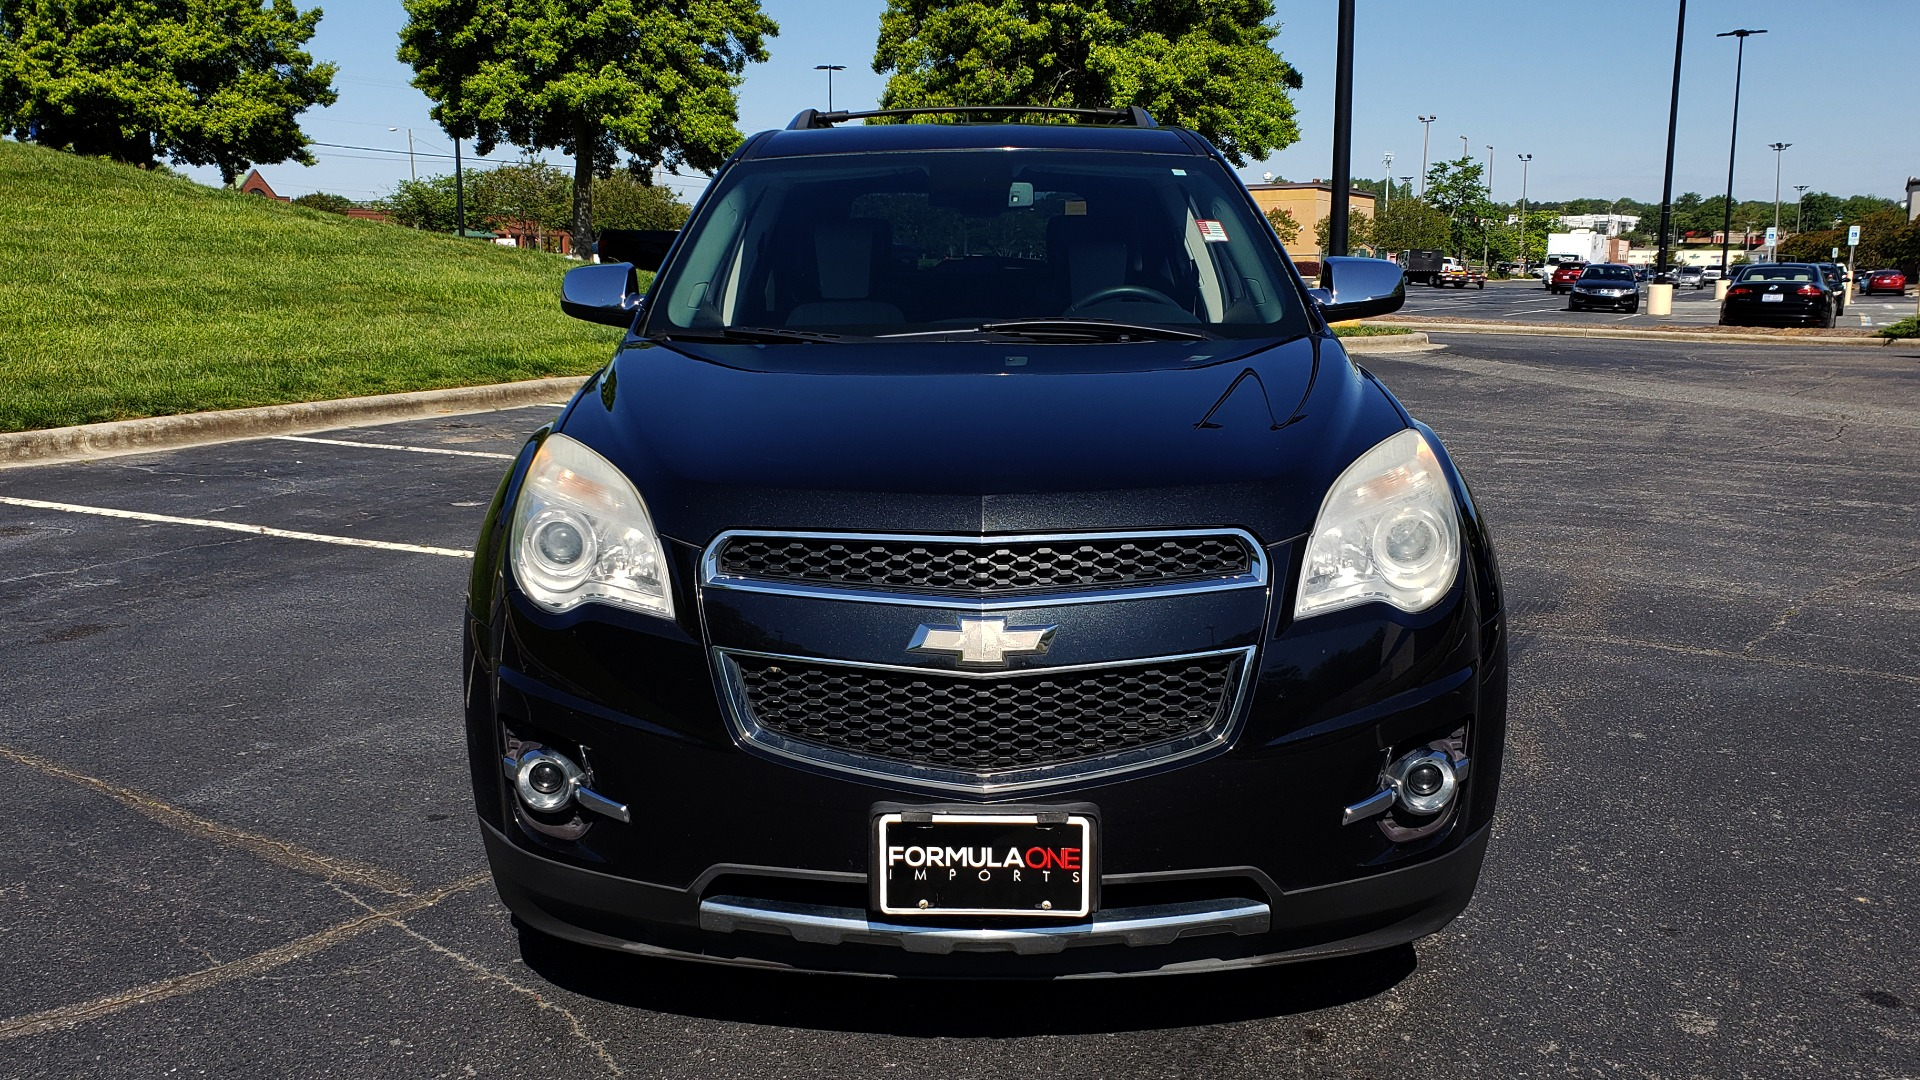 Used 2012 Chevrolet EQUINOX LTZ / FWD / 3.0L V6 / NAV / SUNROOF / PIONEER SND / REARVIEW for sale Sold at Formula Imports in Charlotte NC 28227 25